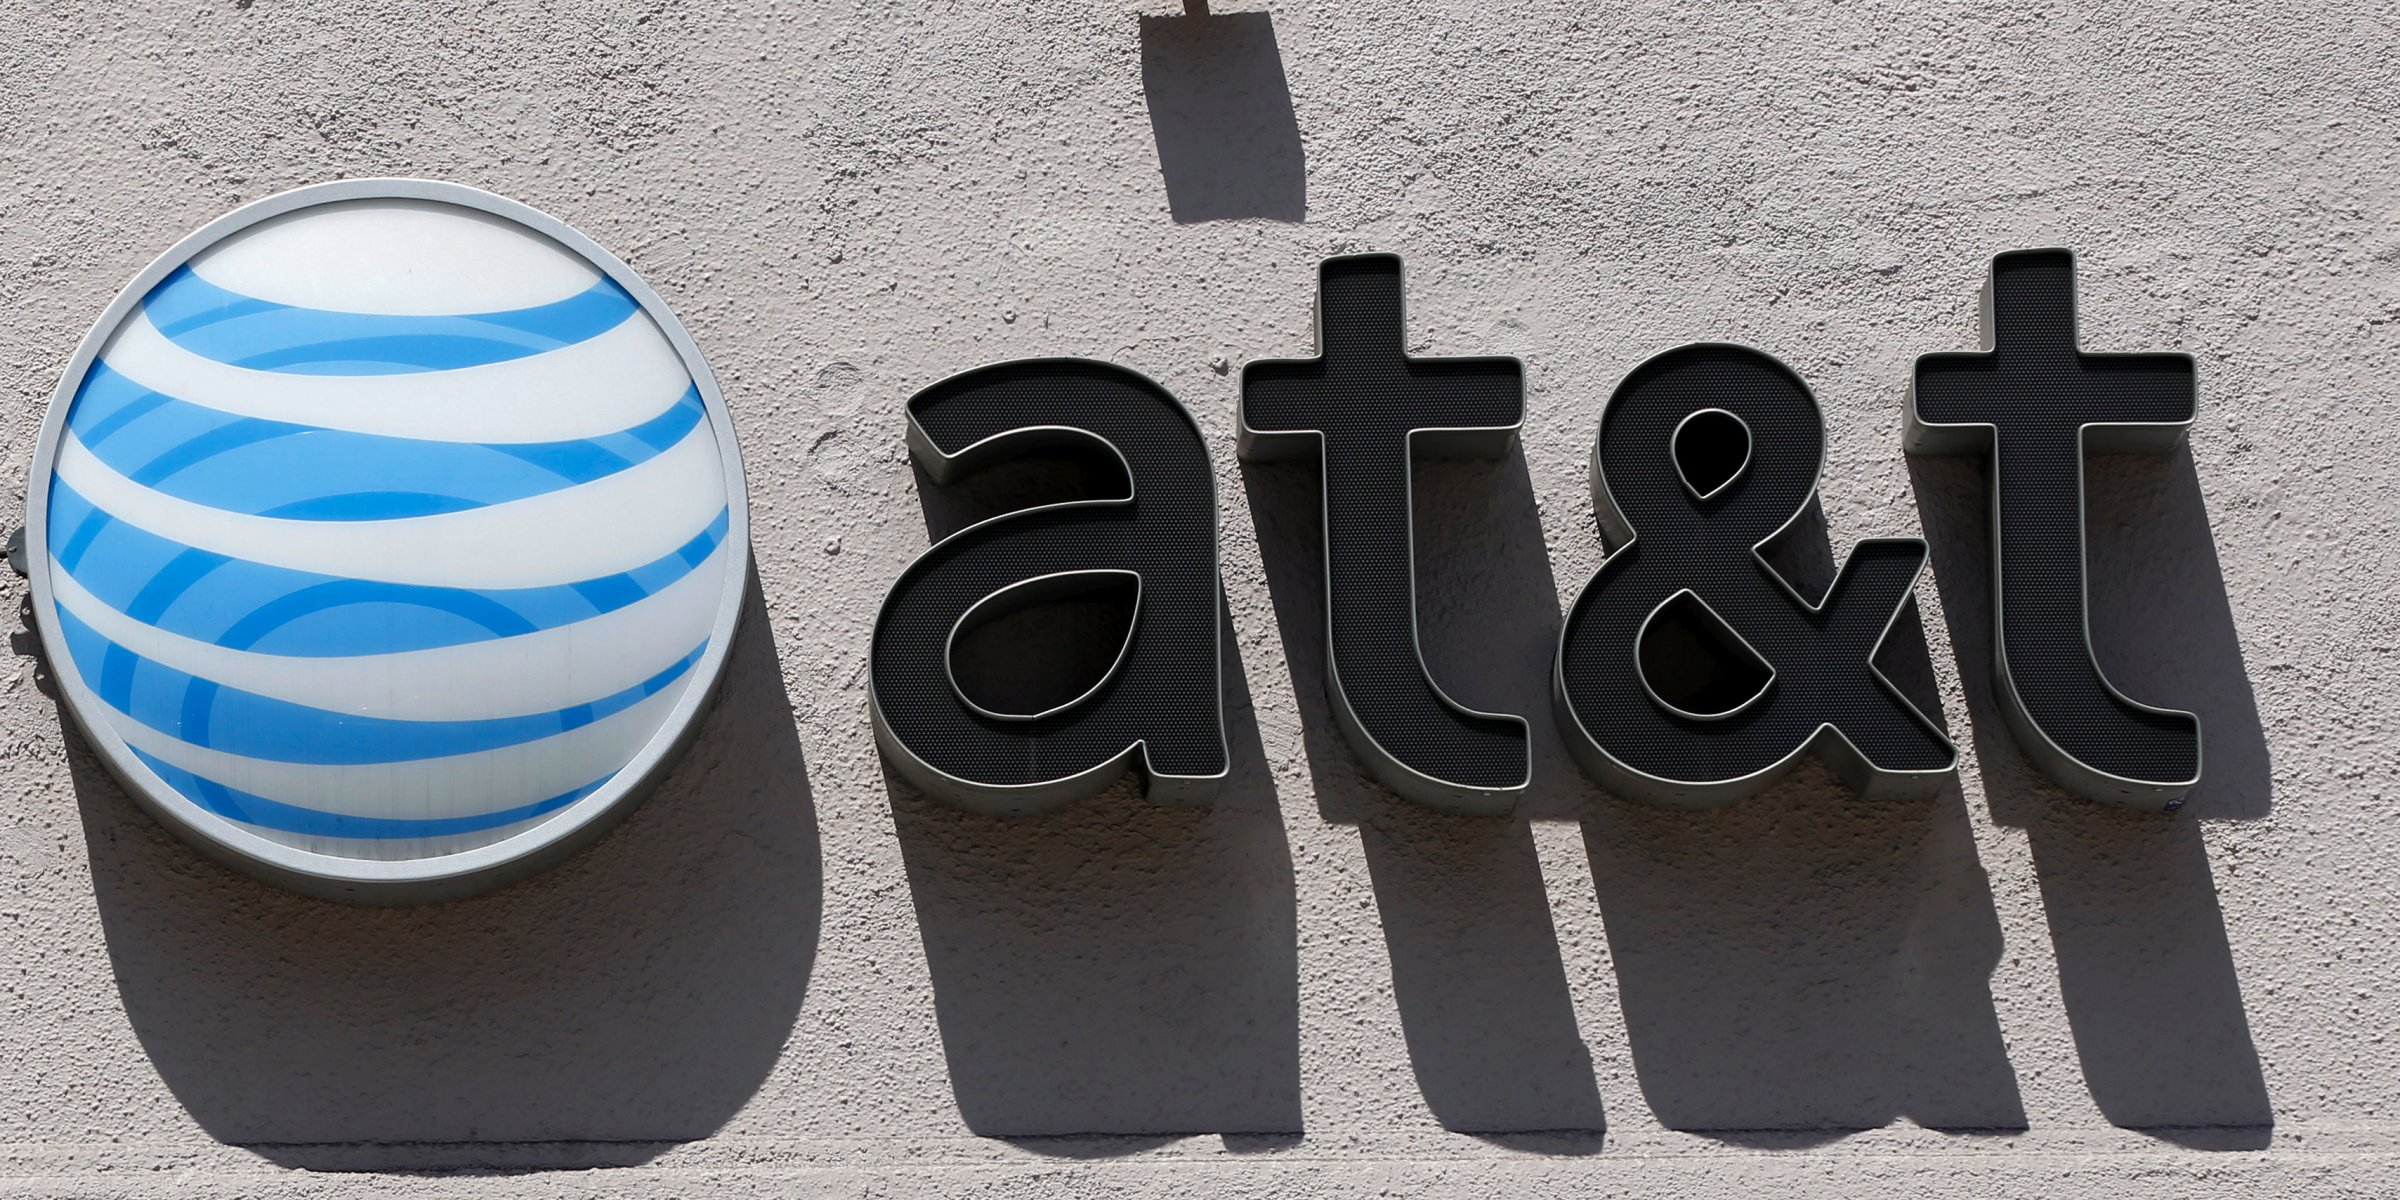 Net neutrality: Is AT&T trying to trick people into supporting the repeal of Title II?